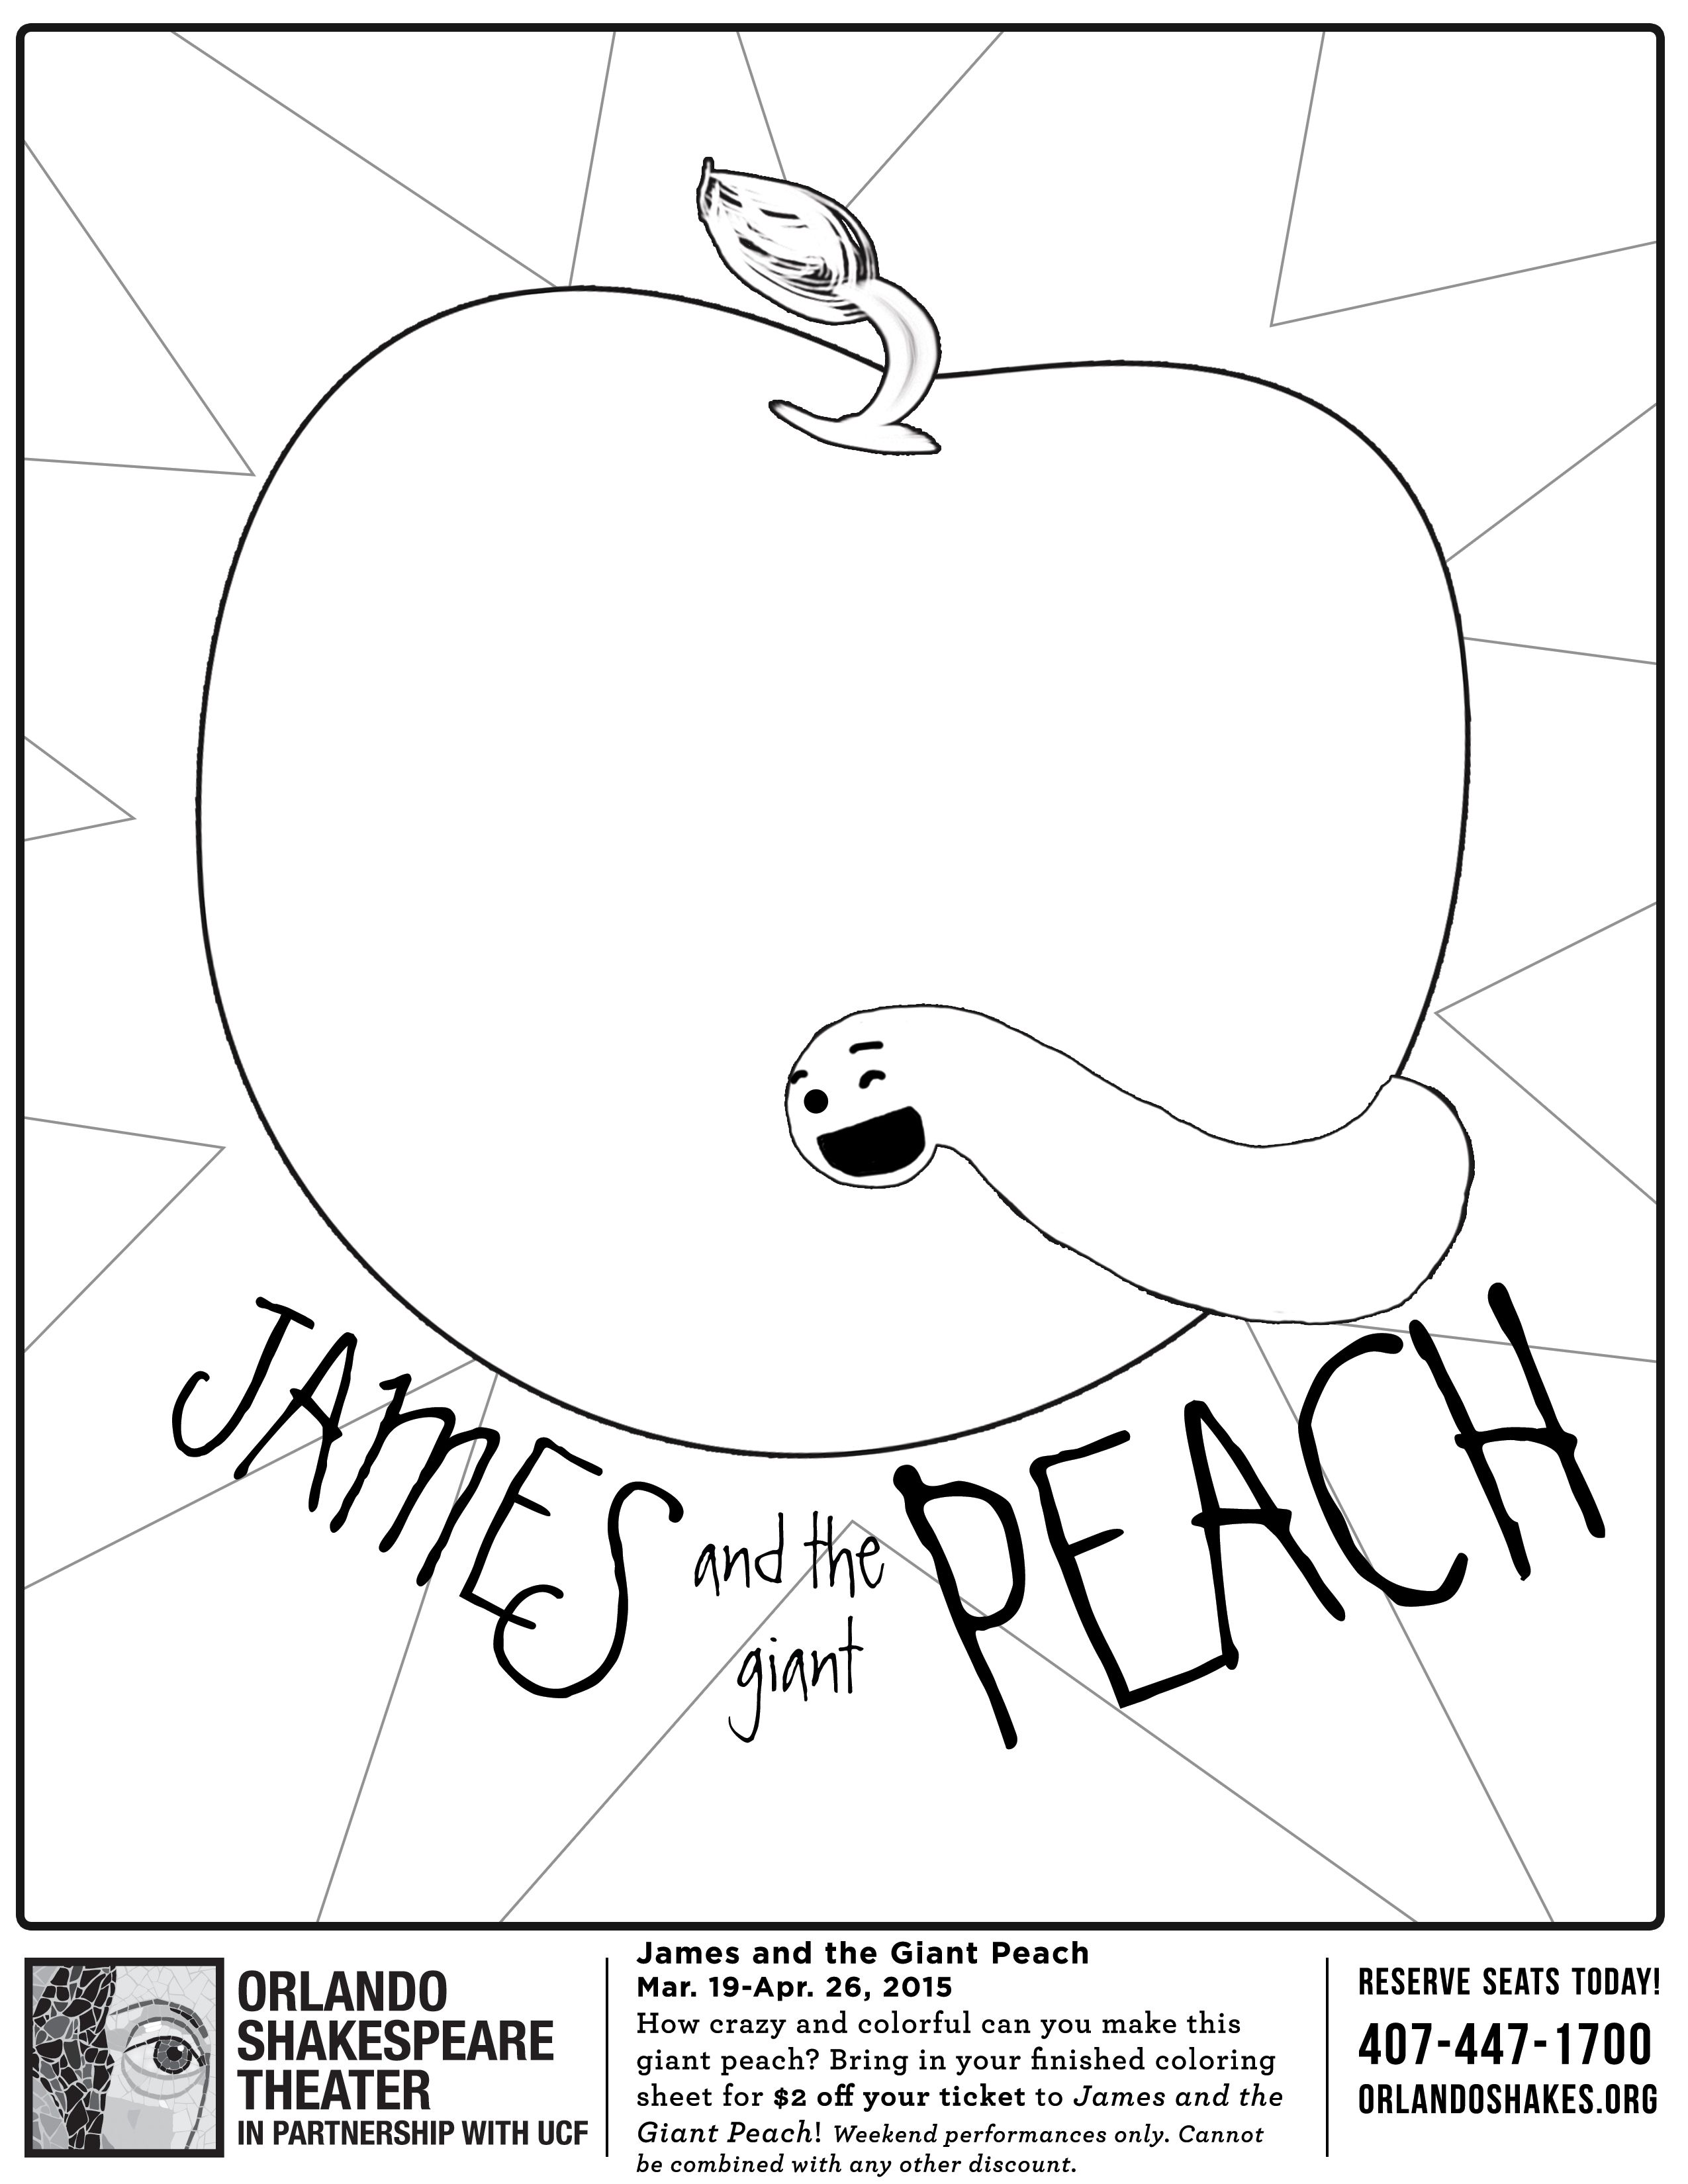 Worksheets James And The Giant Peach Worksheets james and the giant peach coloring pages page 1 happy roald dahl 1